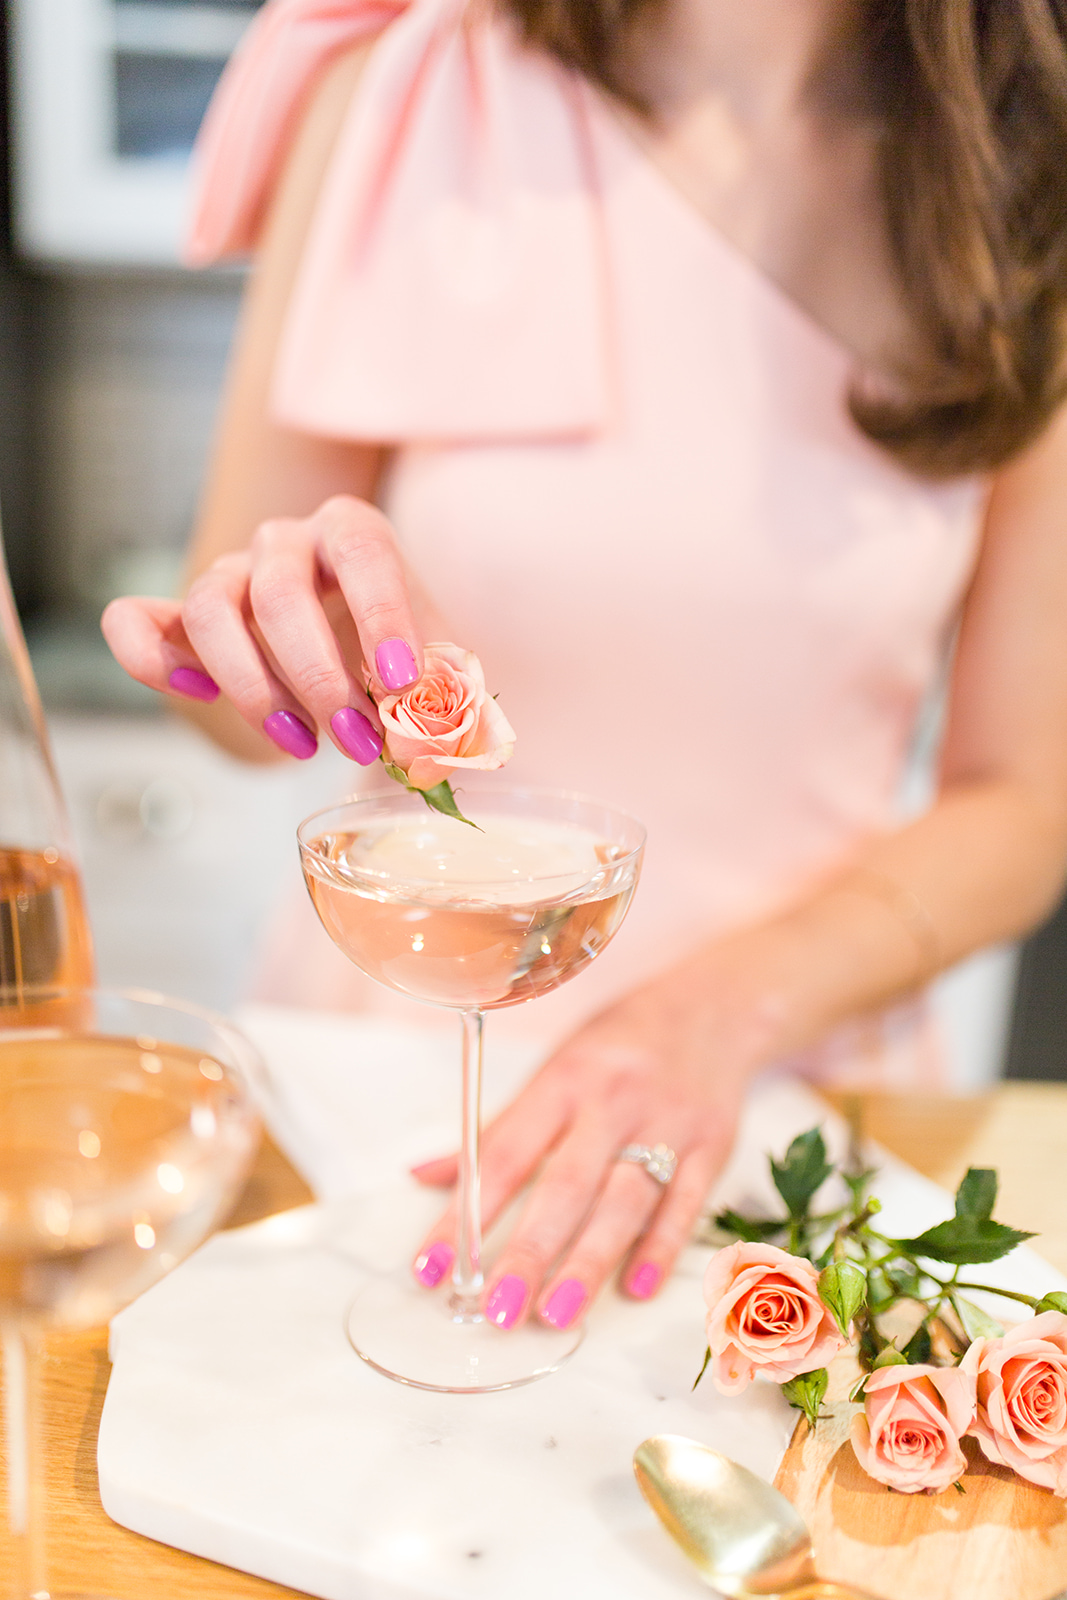 Rosé Spritzer Cocktail Recipe by Simply Jessica Marie | Sami Kathryn Photo